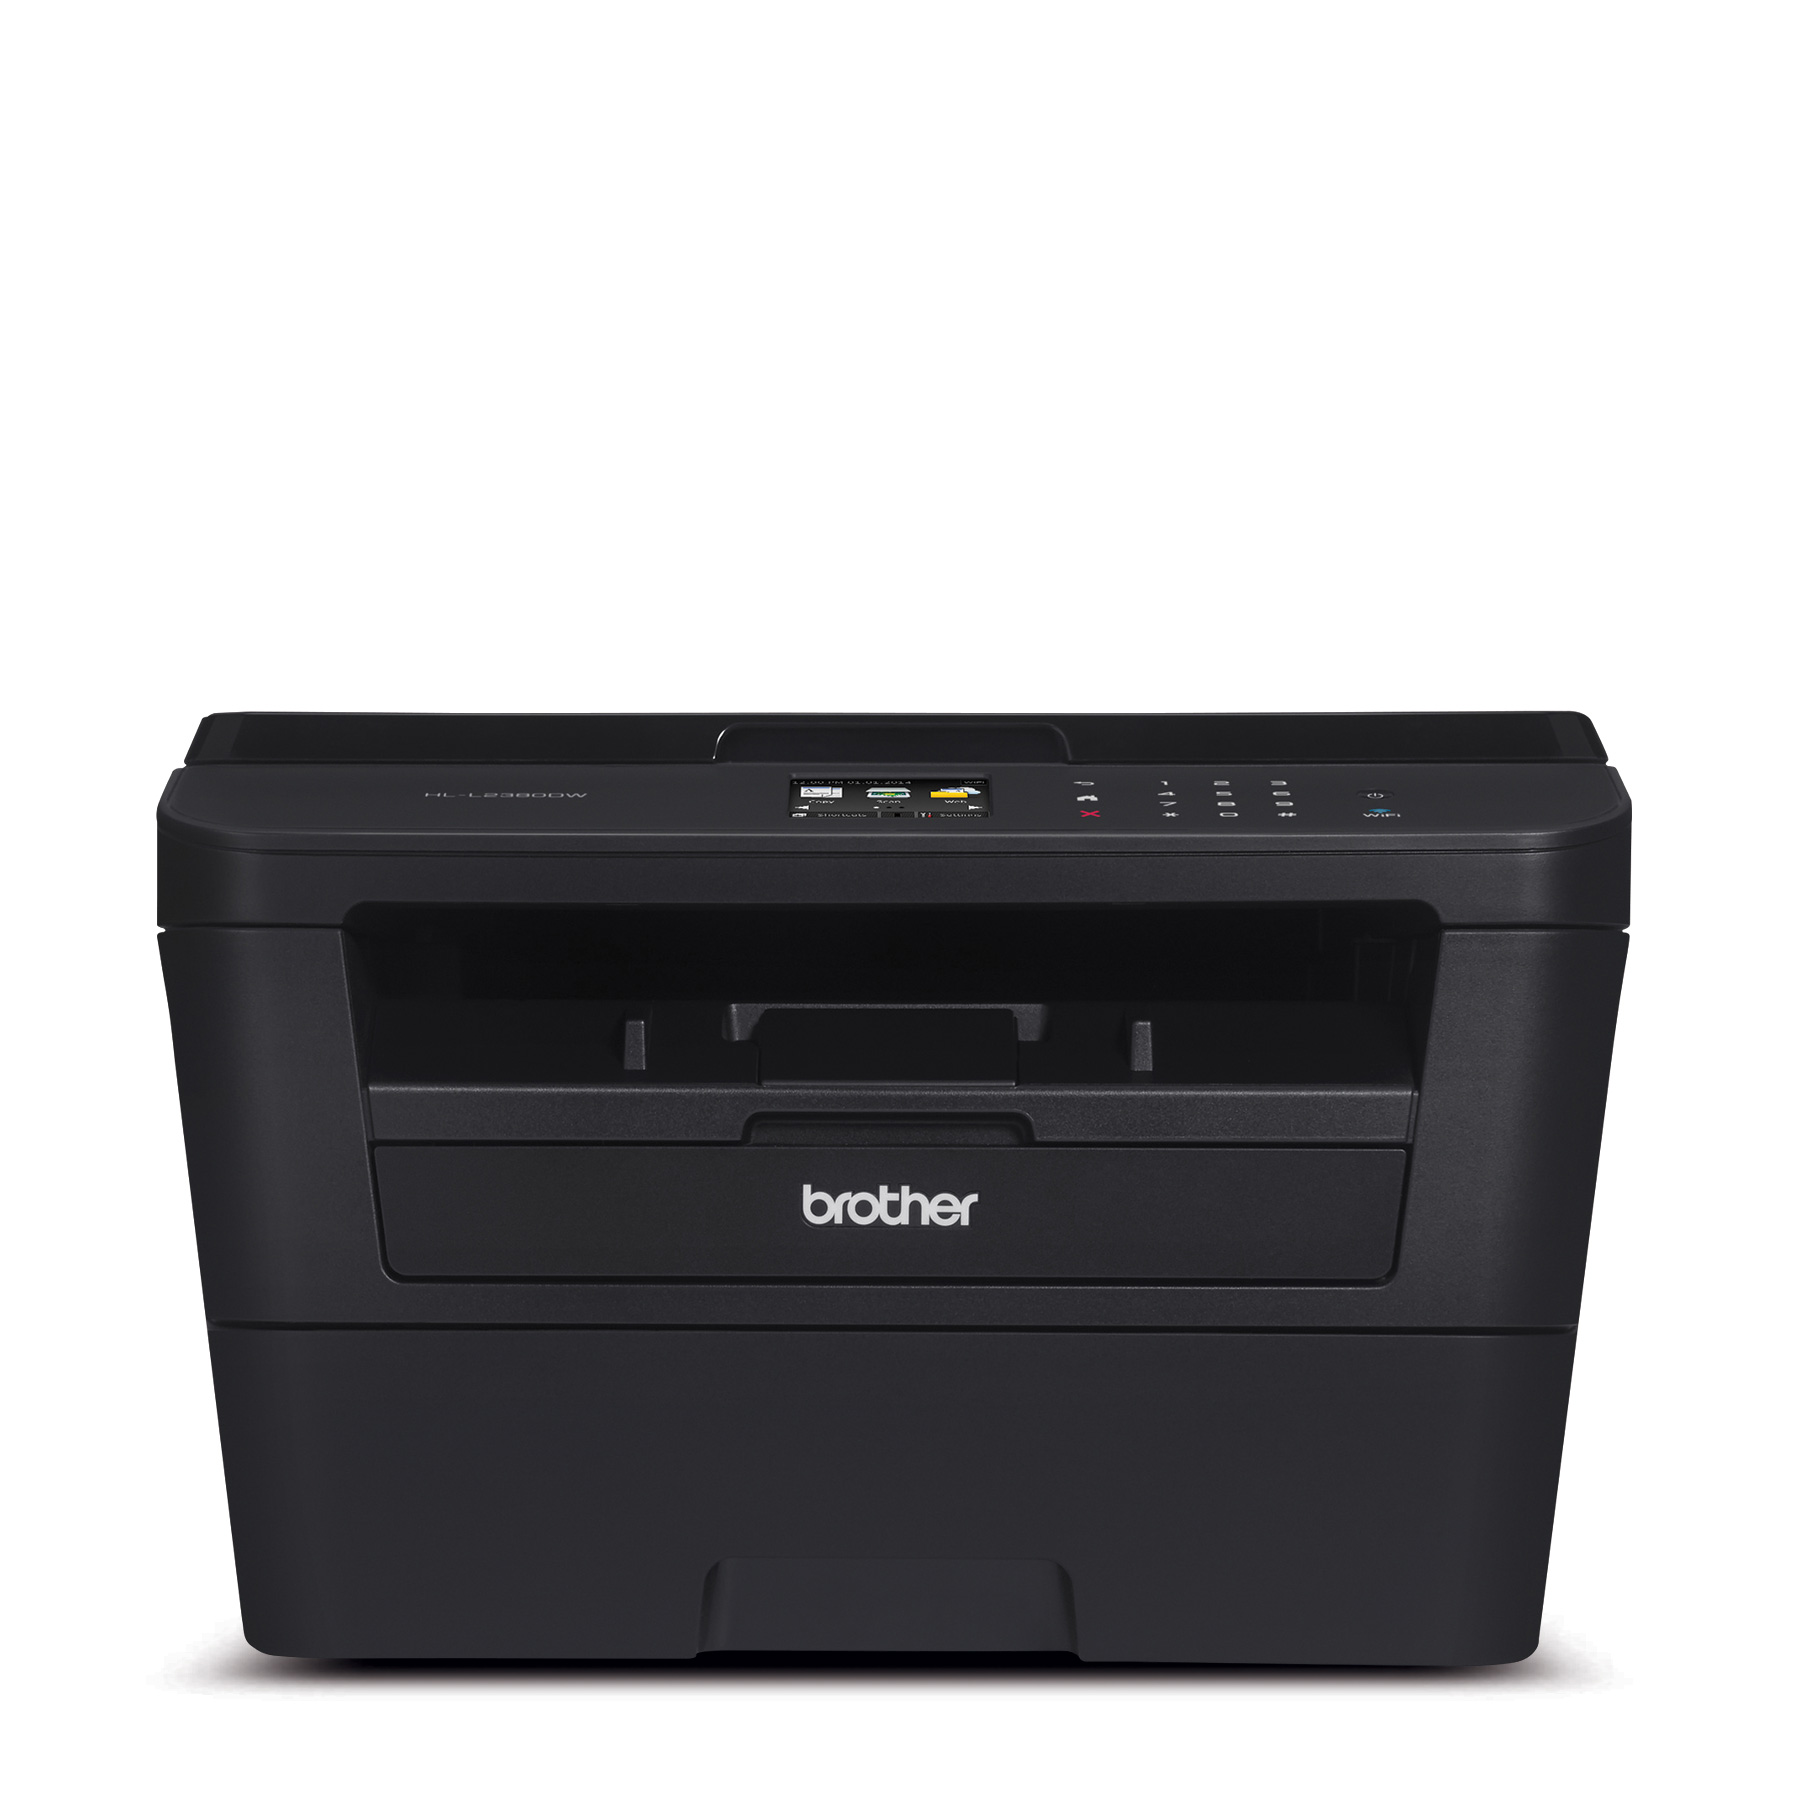 BROTHER HL-L2380DW SCANNER DRIVERS FOR MAC DOWNLOAD